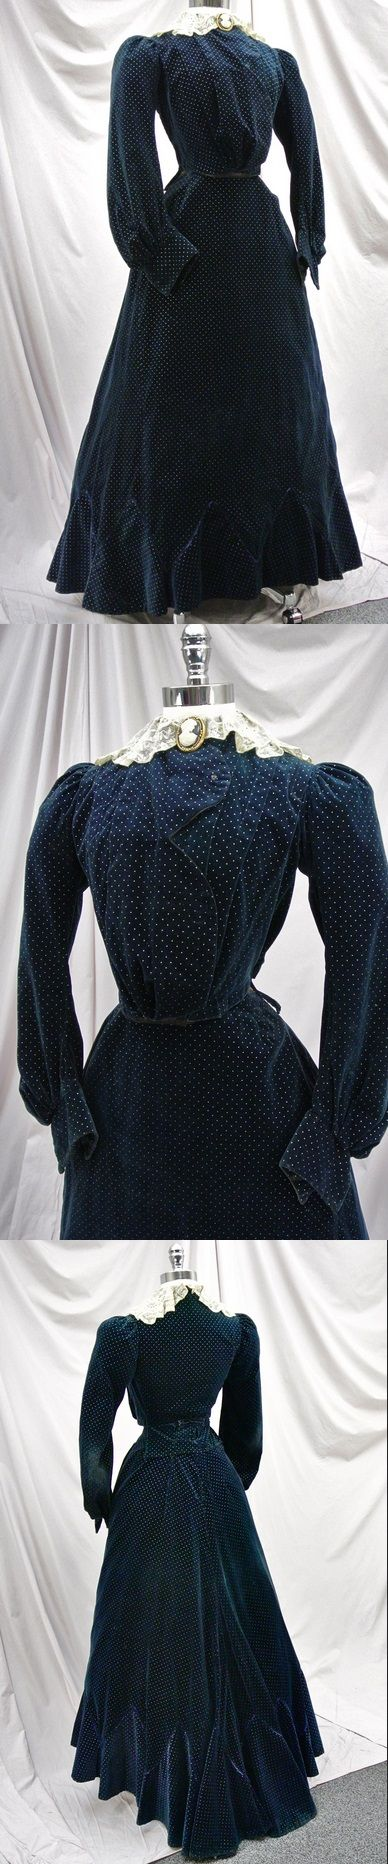 """Edwardian Winter Dress of Navy Blue Velvet with Silver Polka Dots, circa 1903-1905 via eBay 